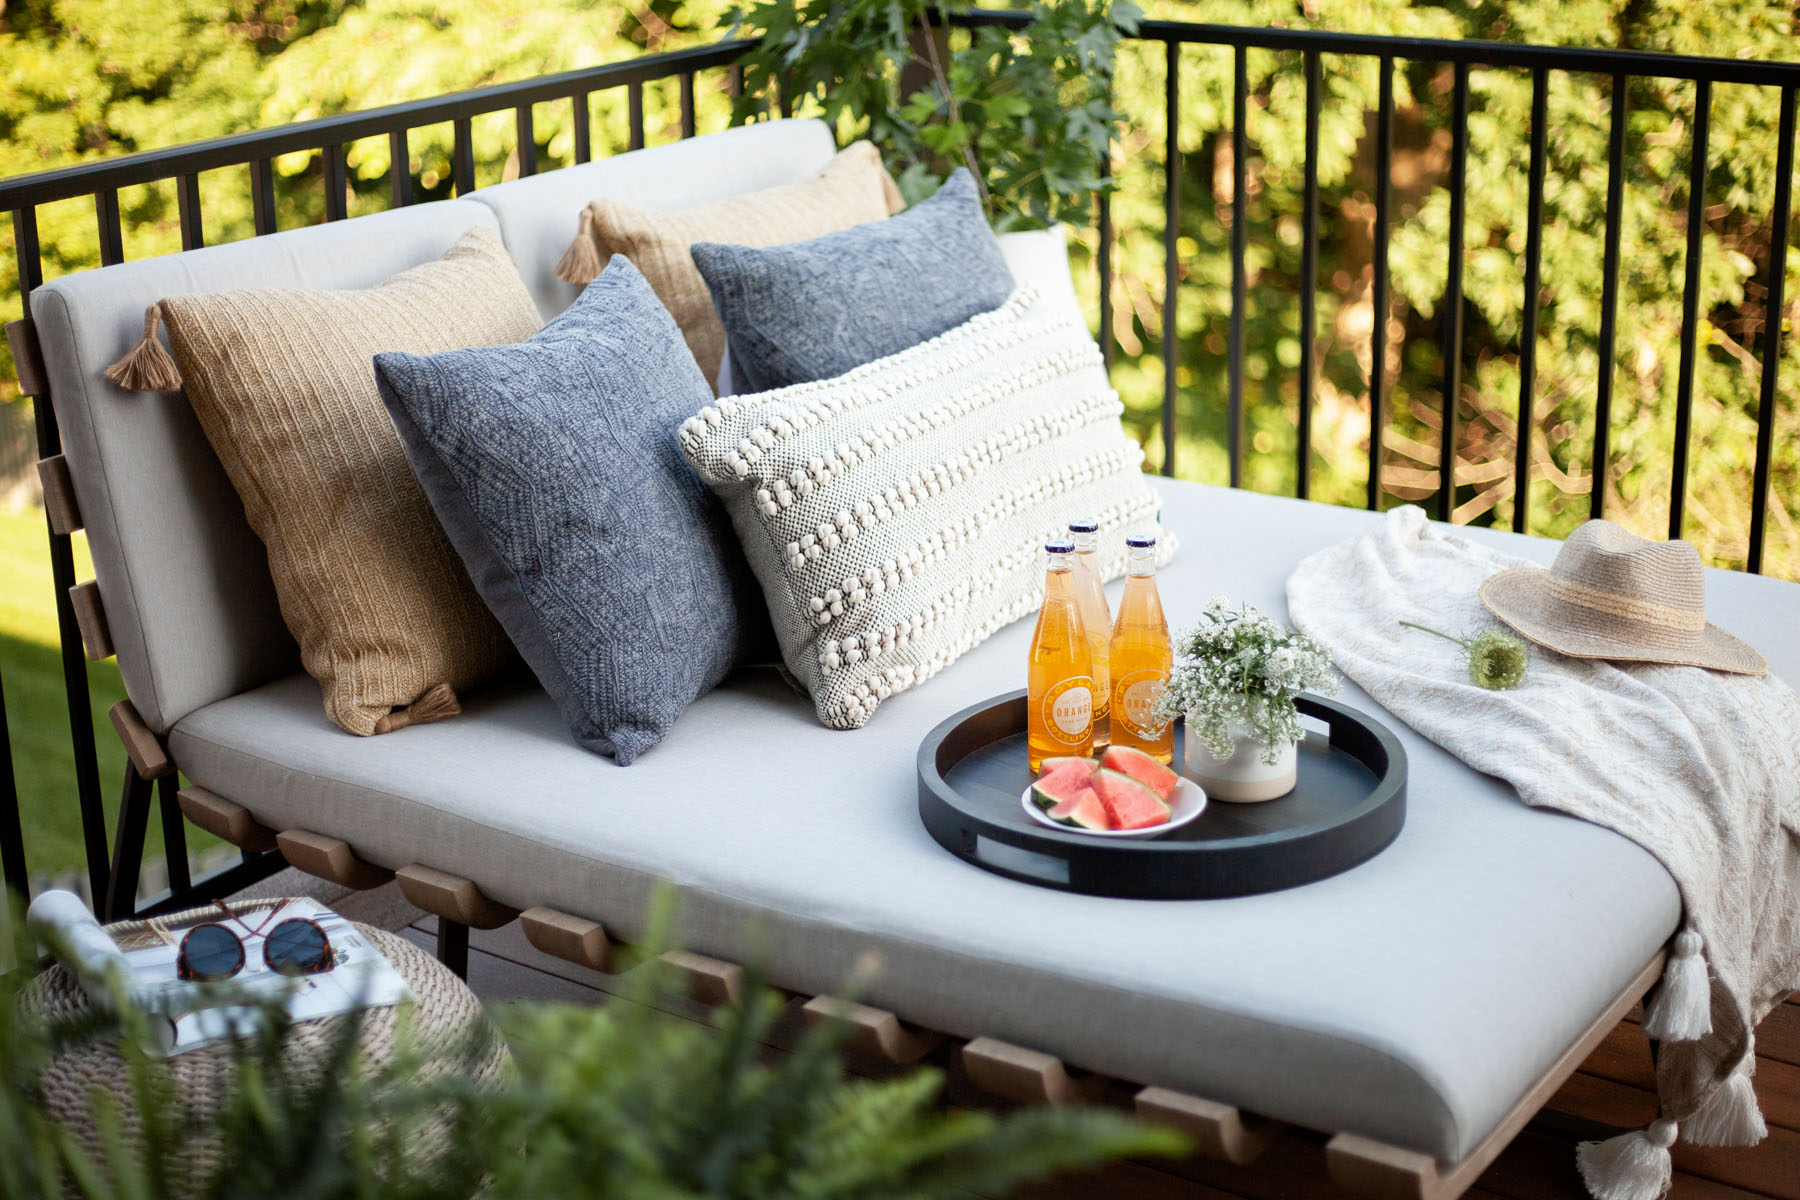 Scout-and-Nimble-Patio-Furniture_07.jpg